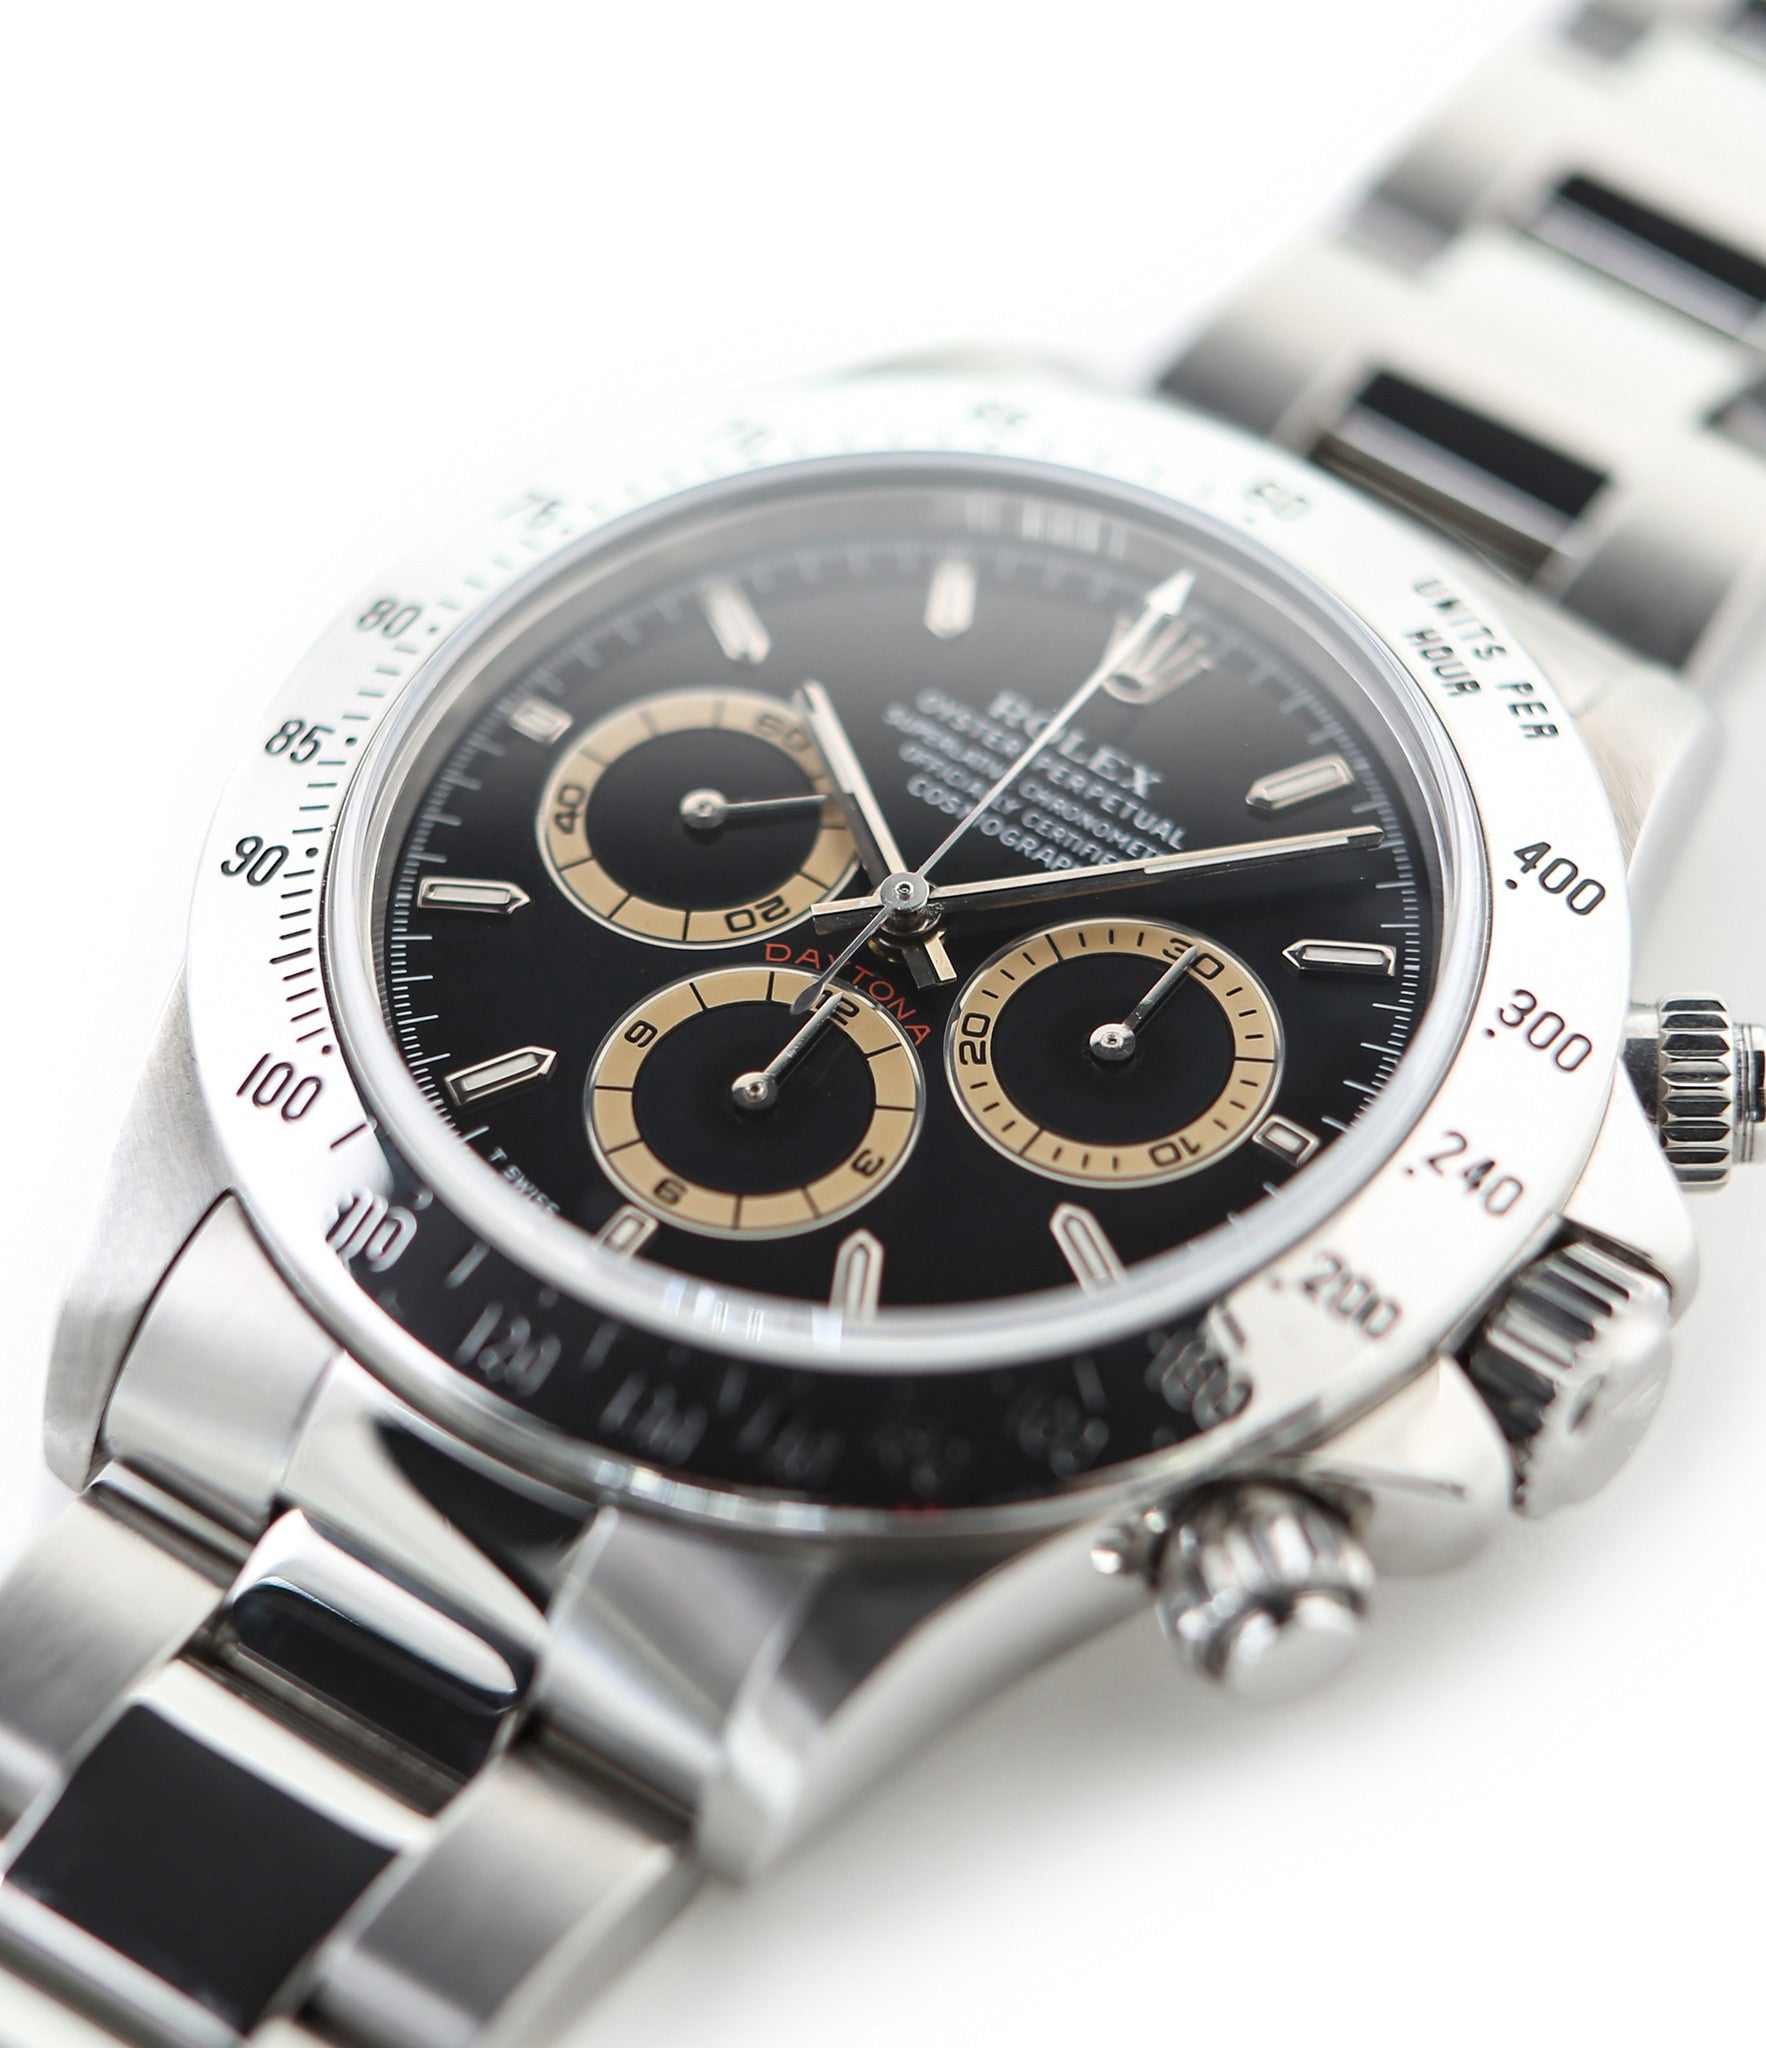 buy Rolex Cosmograph Daytona with Patrizzi dial 16520 stainless steel automatic Cal. 4030 authentic pre-owned luxury watch from 1995 with black dial and stainless steel Rolex bracelet with chronograph, chronometer, hours, minutes, sub-seconds